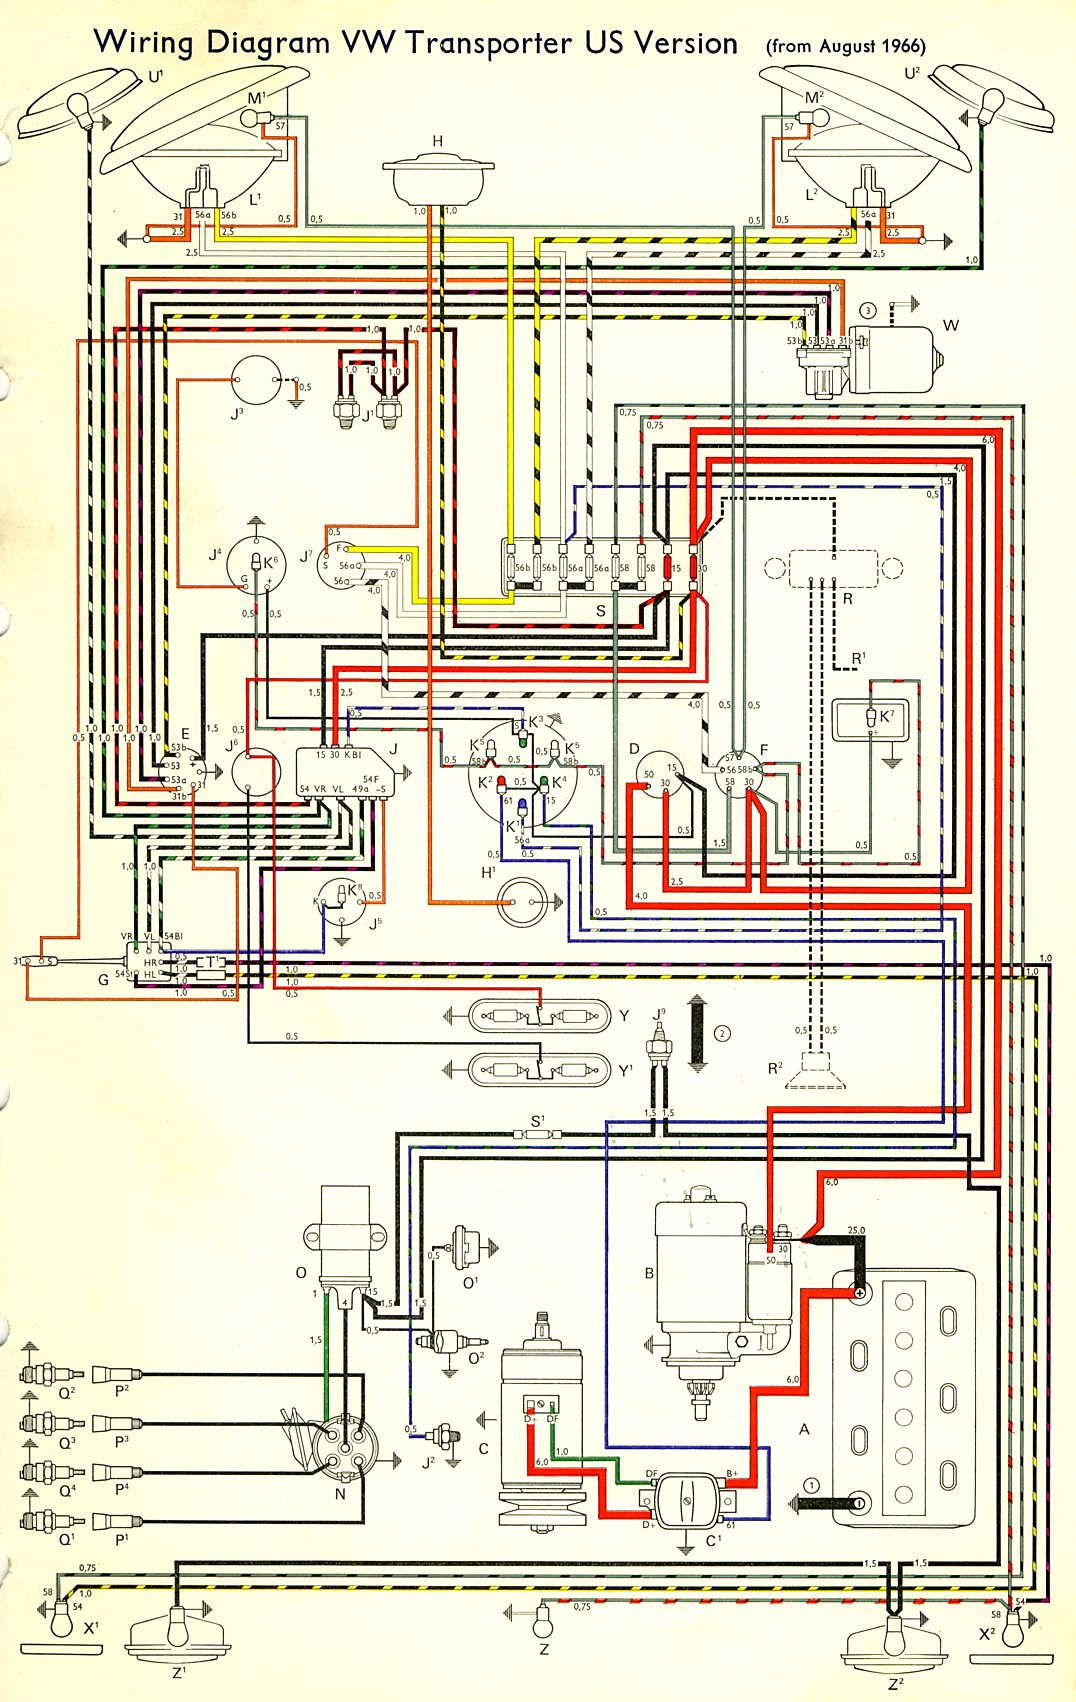 bus_67_USA 67 vw bus wiring harness 71 vw wiring harness \u2022 wiring diagrams vw type 3 wiring harness at virtualis.co